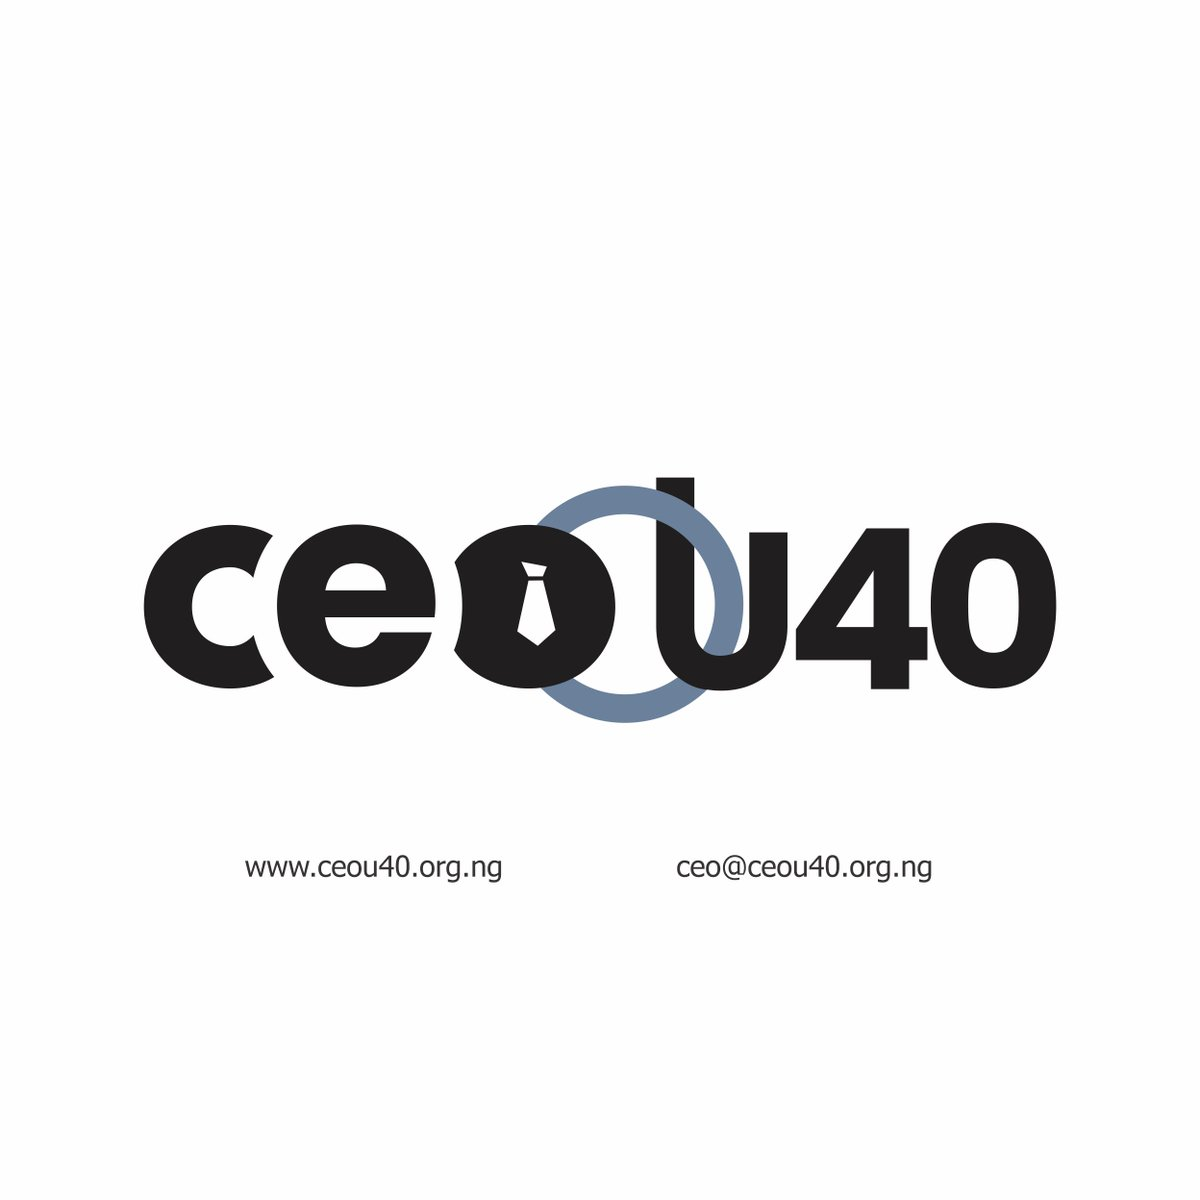 CEOu40 is an entrepreneur movement designed for people under 40 years who owns or has a business idea  Goal:  To make wisdom work more than ENERGY  http://www.ceo4u.org.ng  Location: Lagos-Nigeria.  #ceou40 #ceo #socialmedia #business #society #money #smjury #marketingpic.twitter.com/0w9N31ifbX